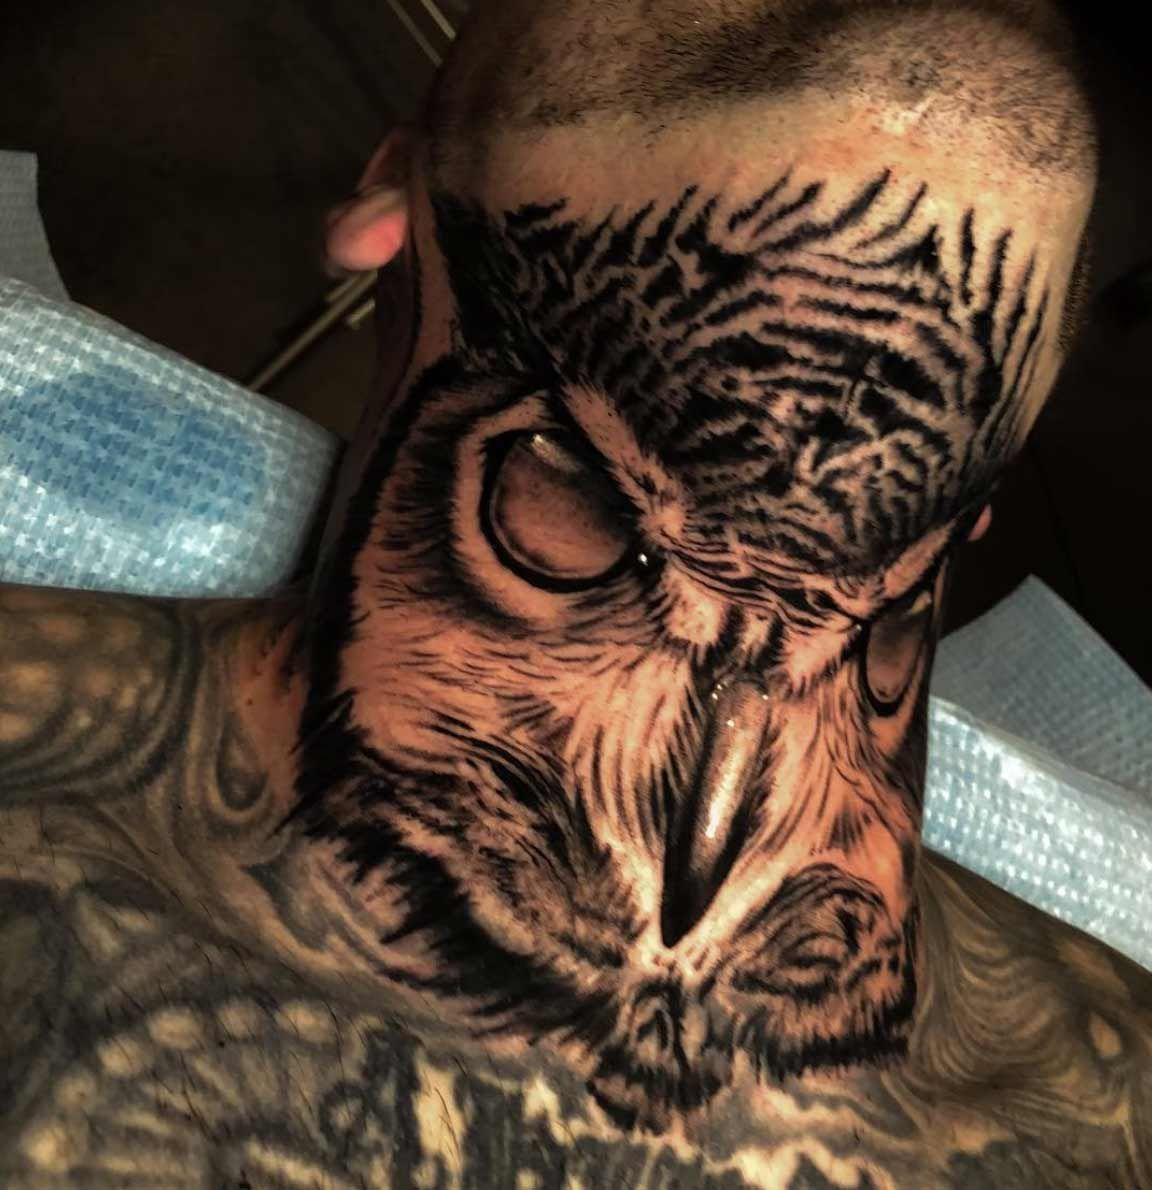 50 Incredibly Cool Neck Tattoos For Men And Women Neck Tattoo For Guys Neck Tattoo Throat Tattoo